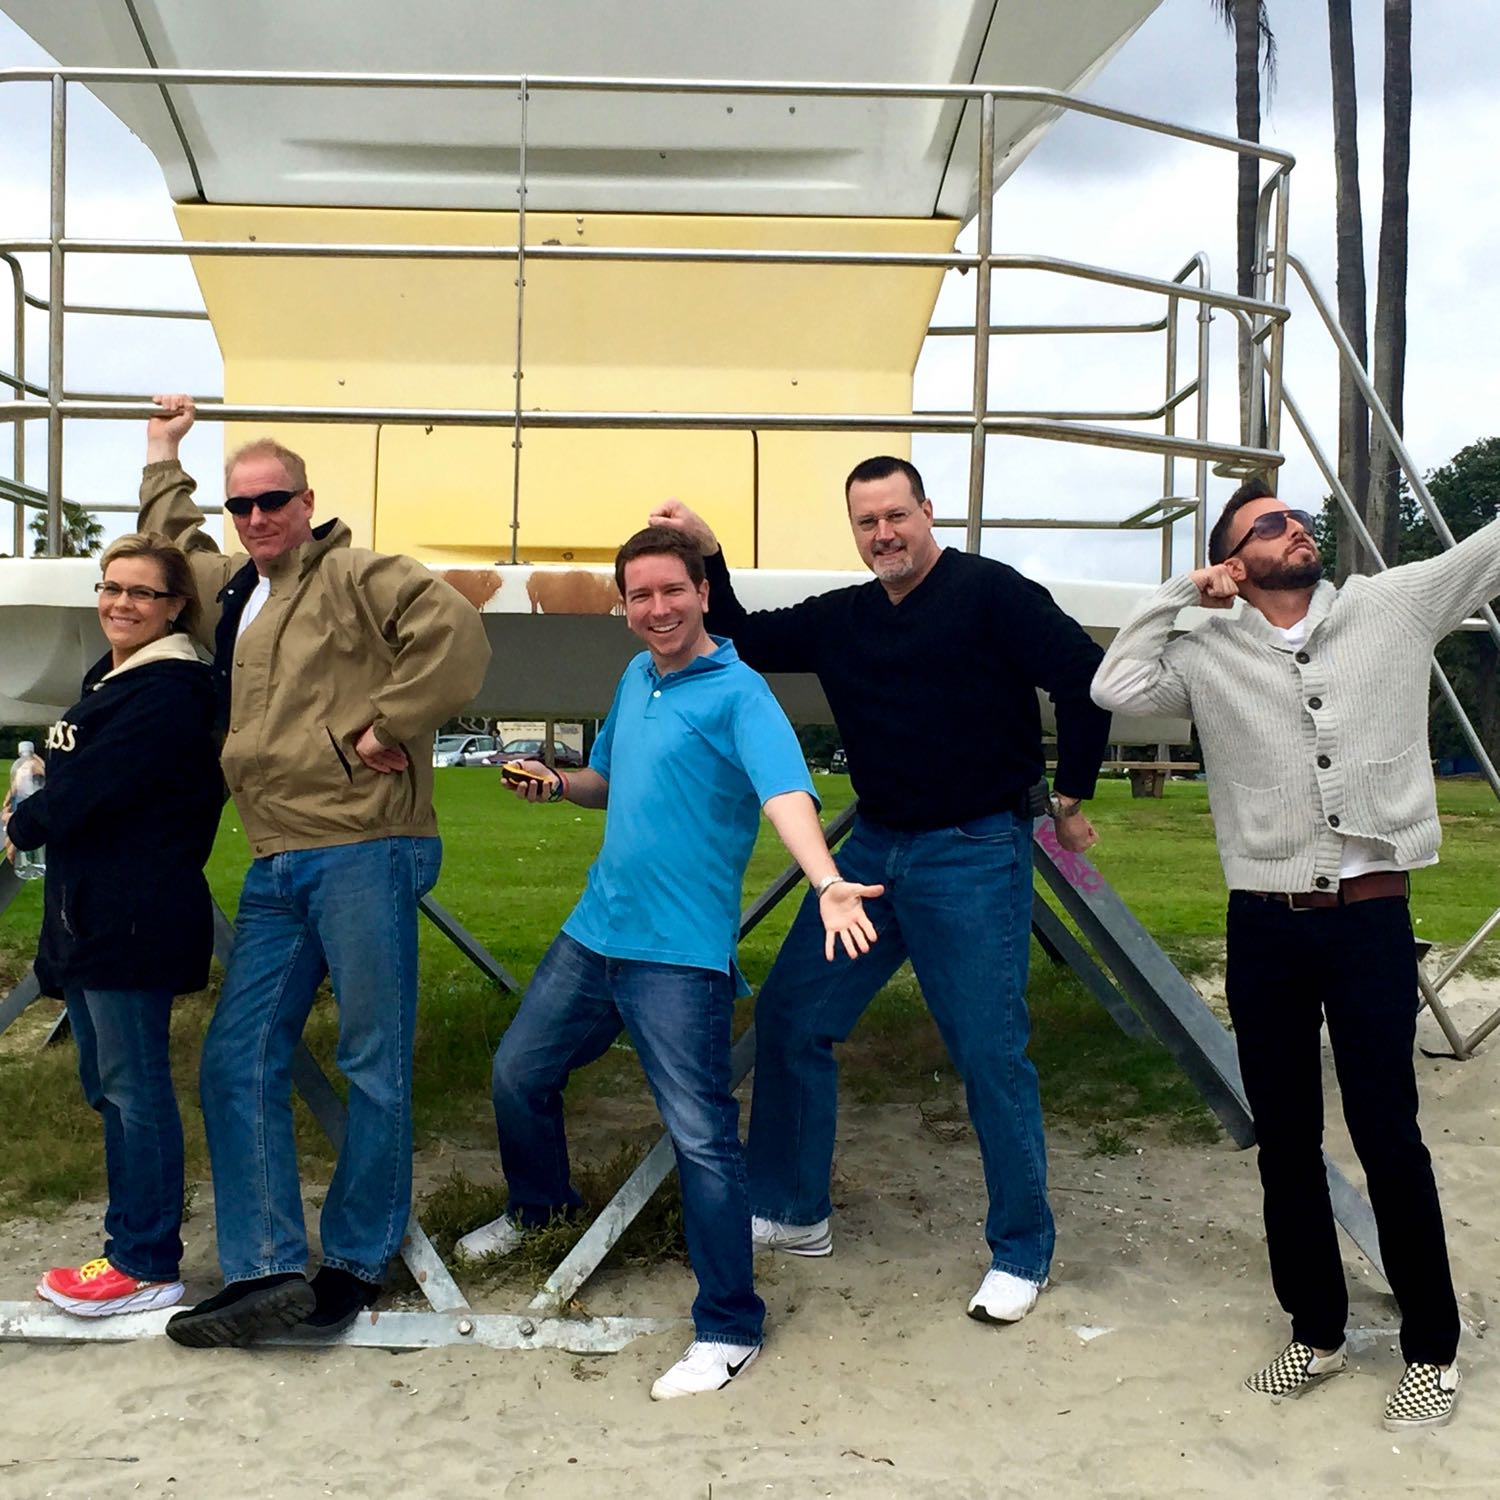 corporate team building events in Los Angeles